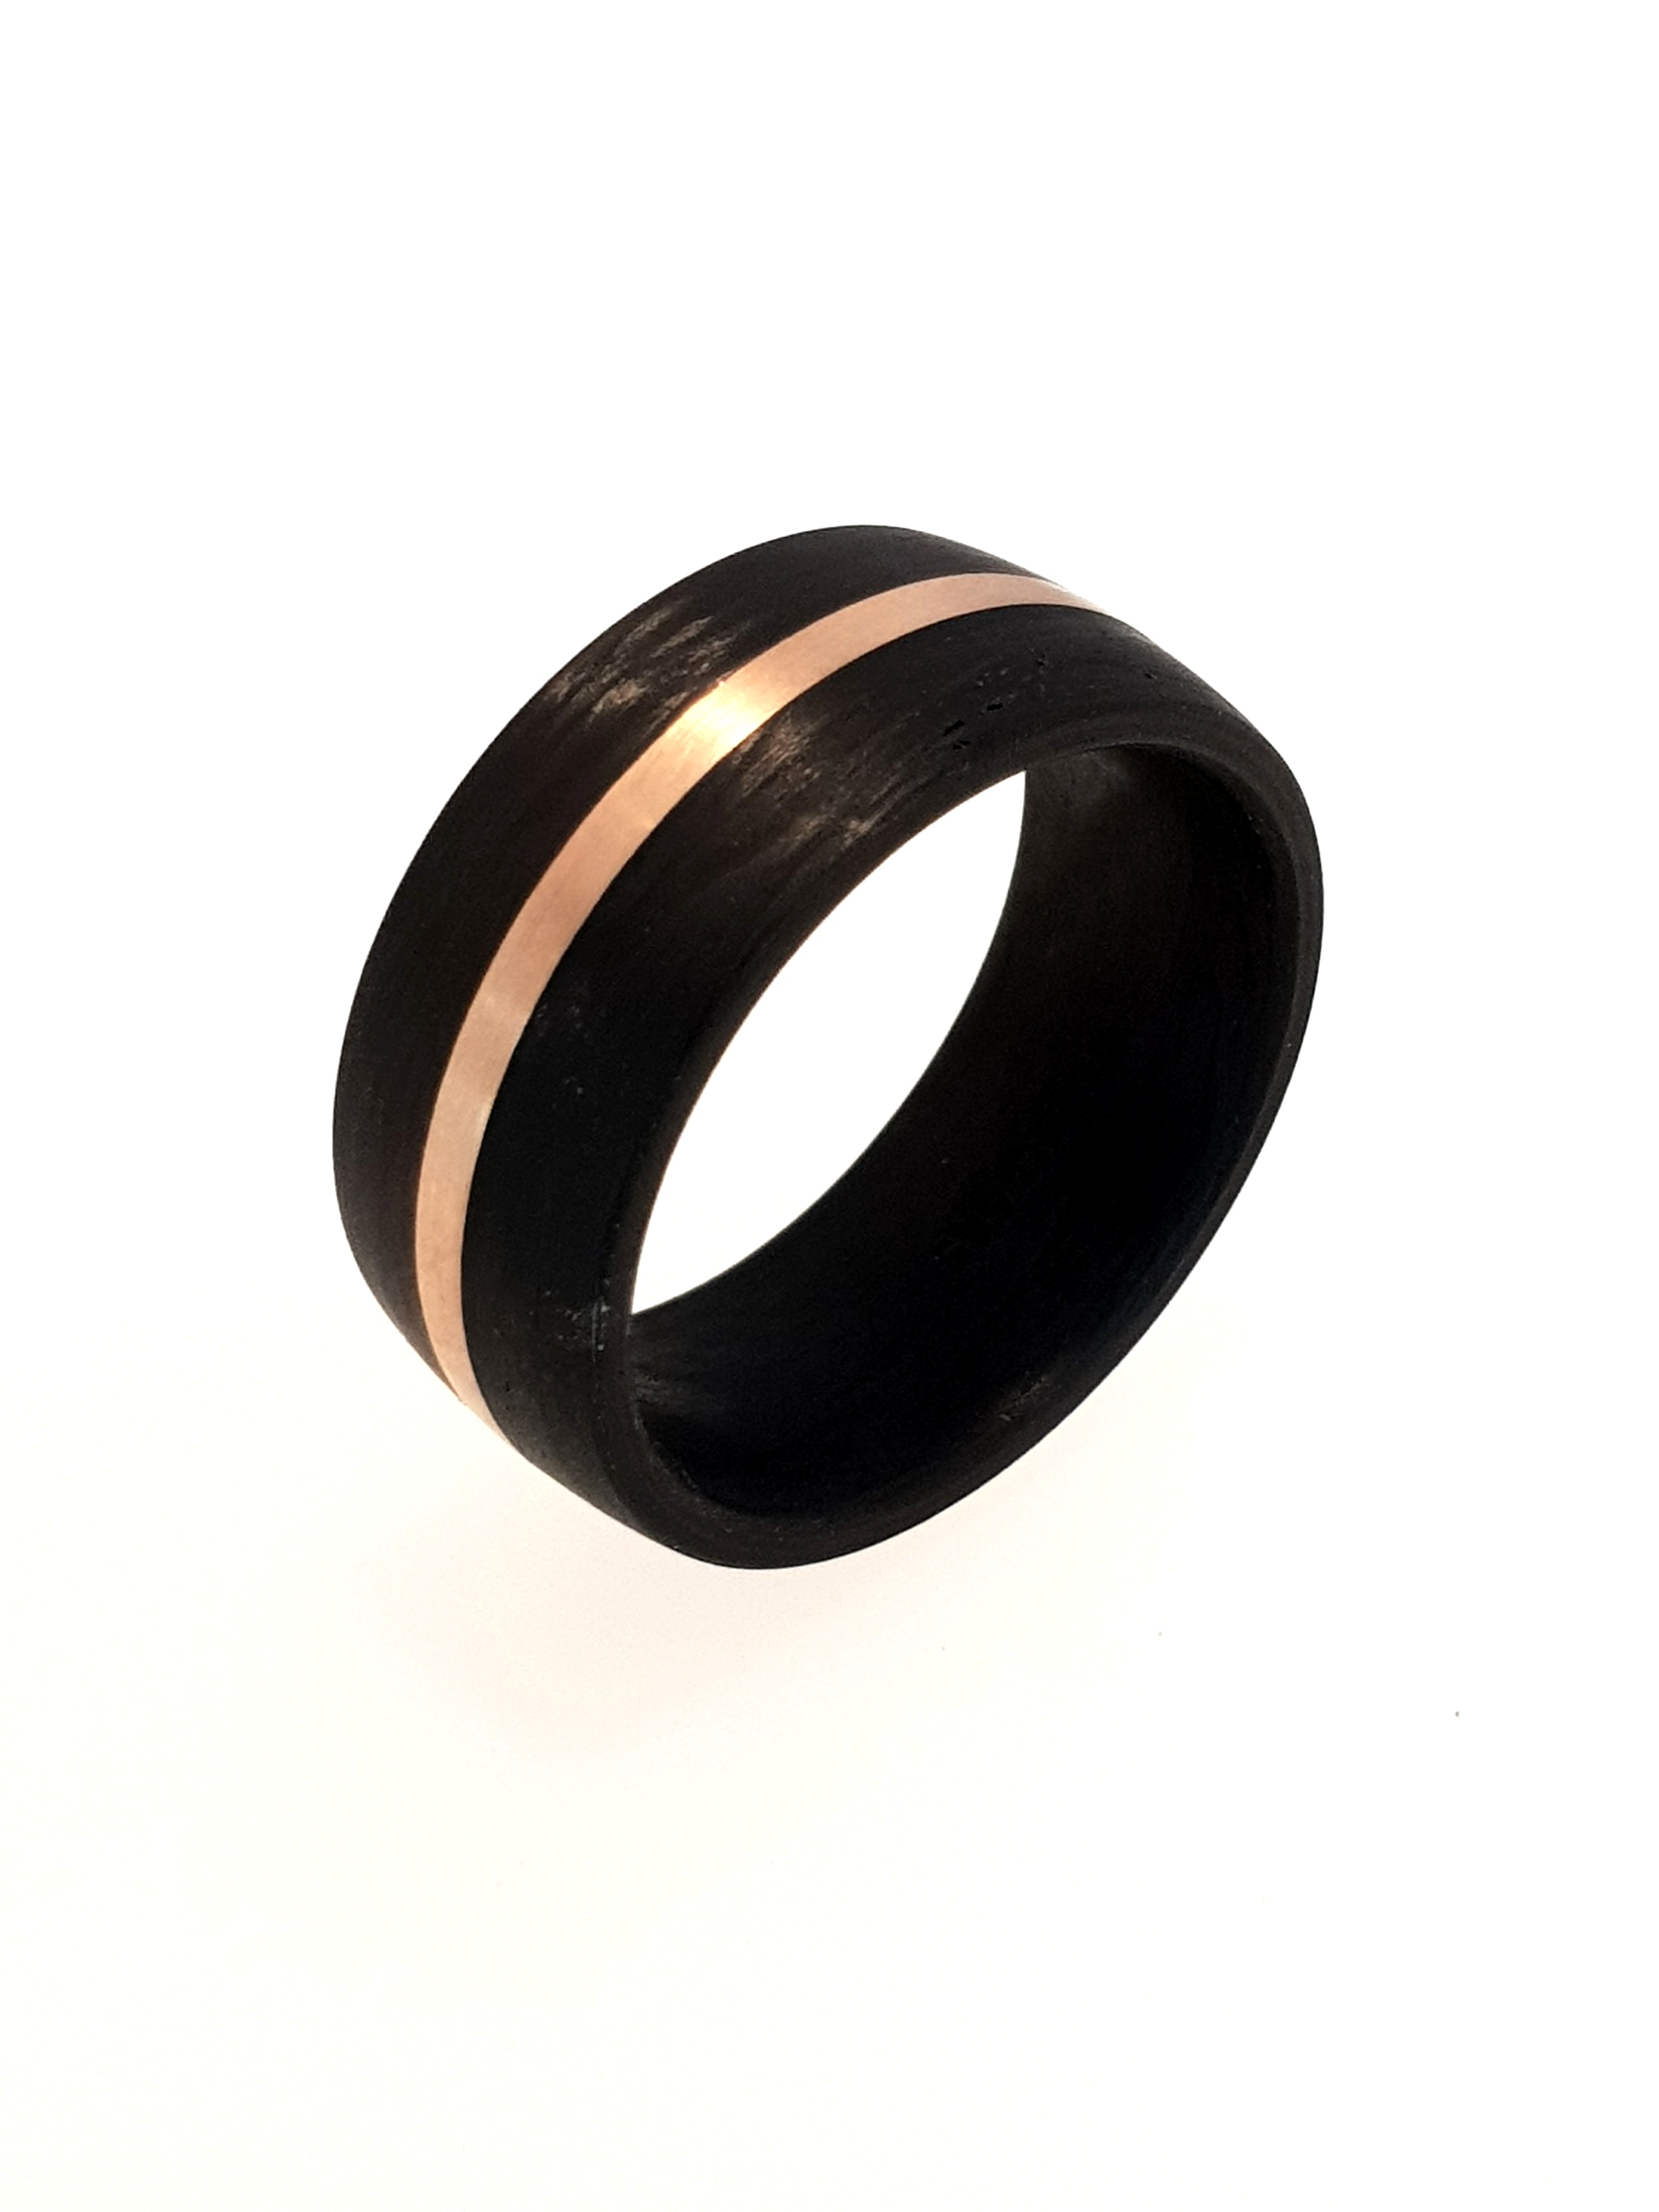 Carbon Fibre Ring, 10mm Band    Titan Factory (Model: 59316/003/000/N556)   Current Stock Size: Y1/2  Stock Code: E9840  £370